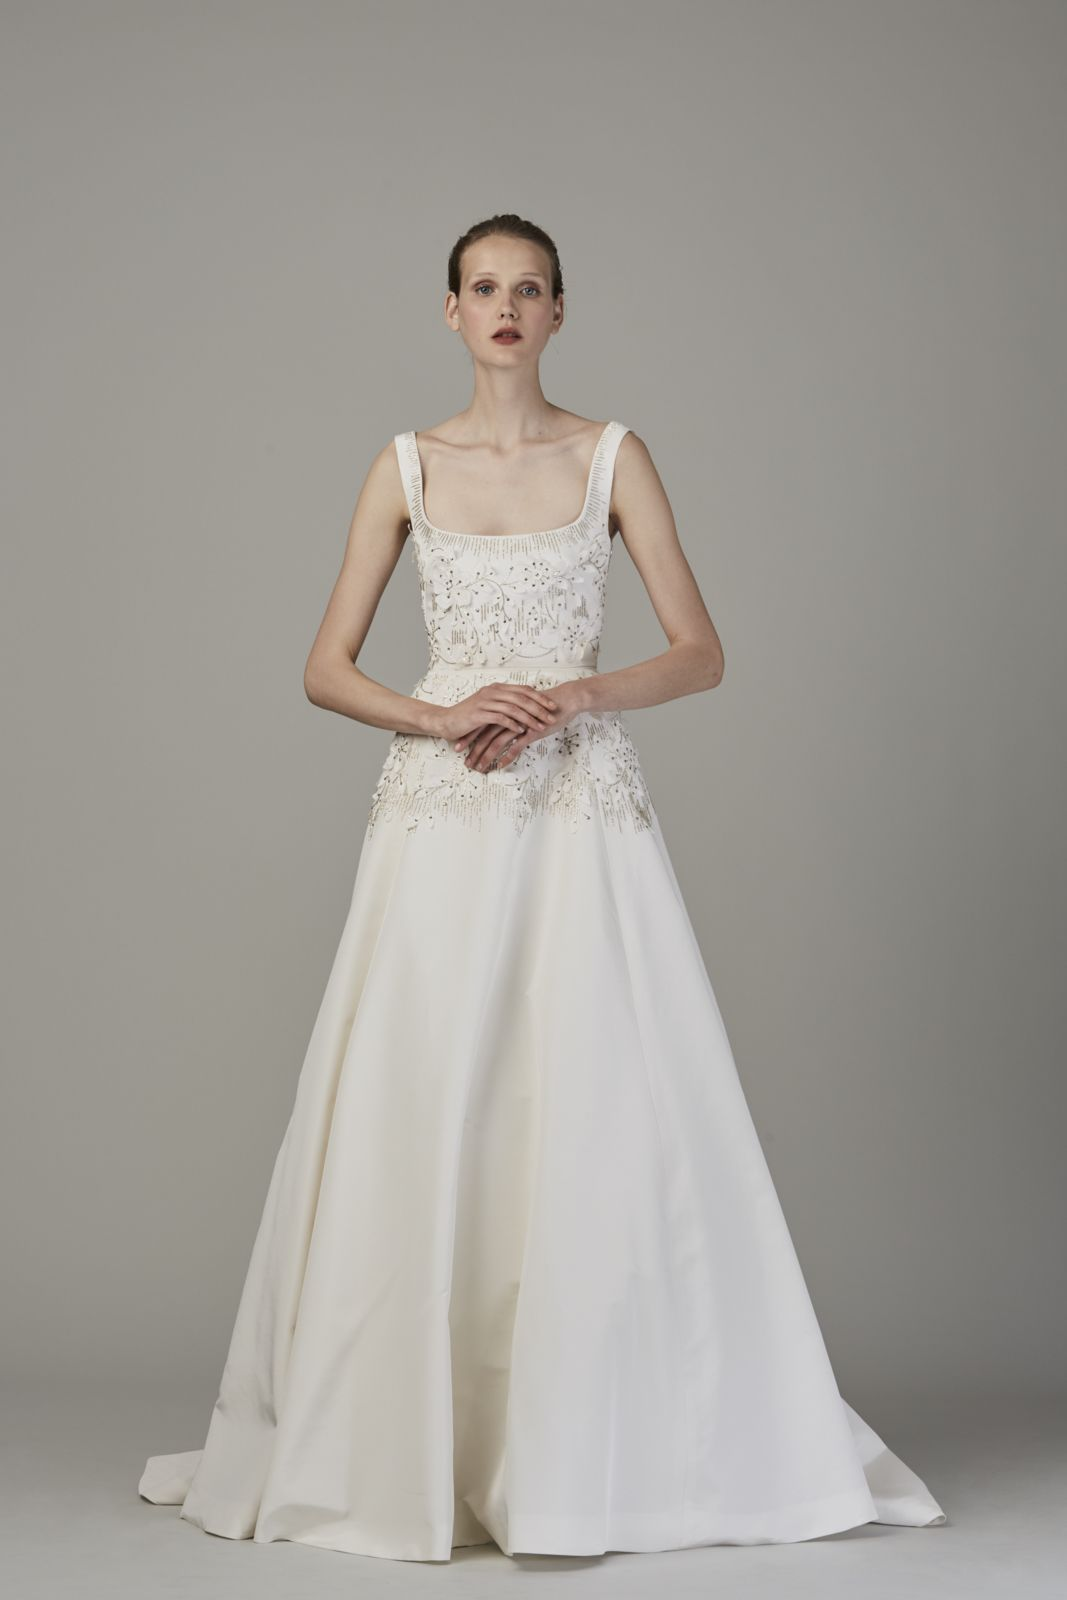 Cute Explore Lela Rose Bridal Gown and more